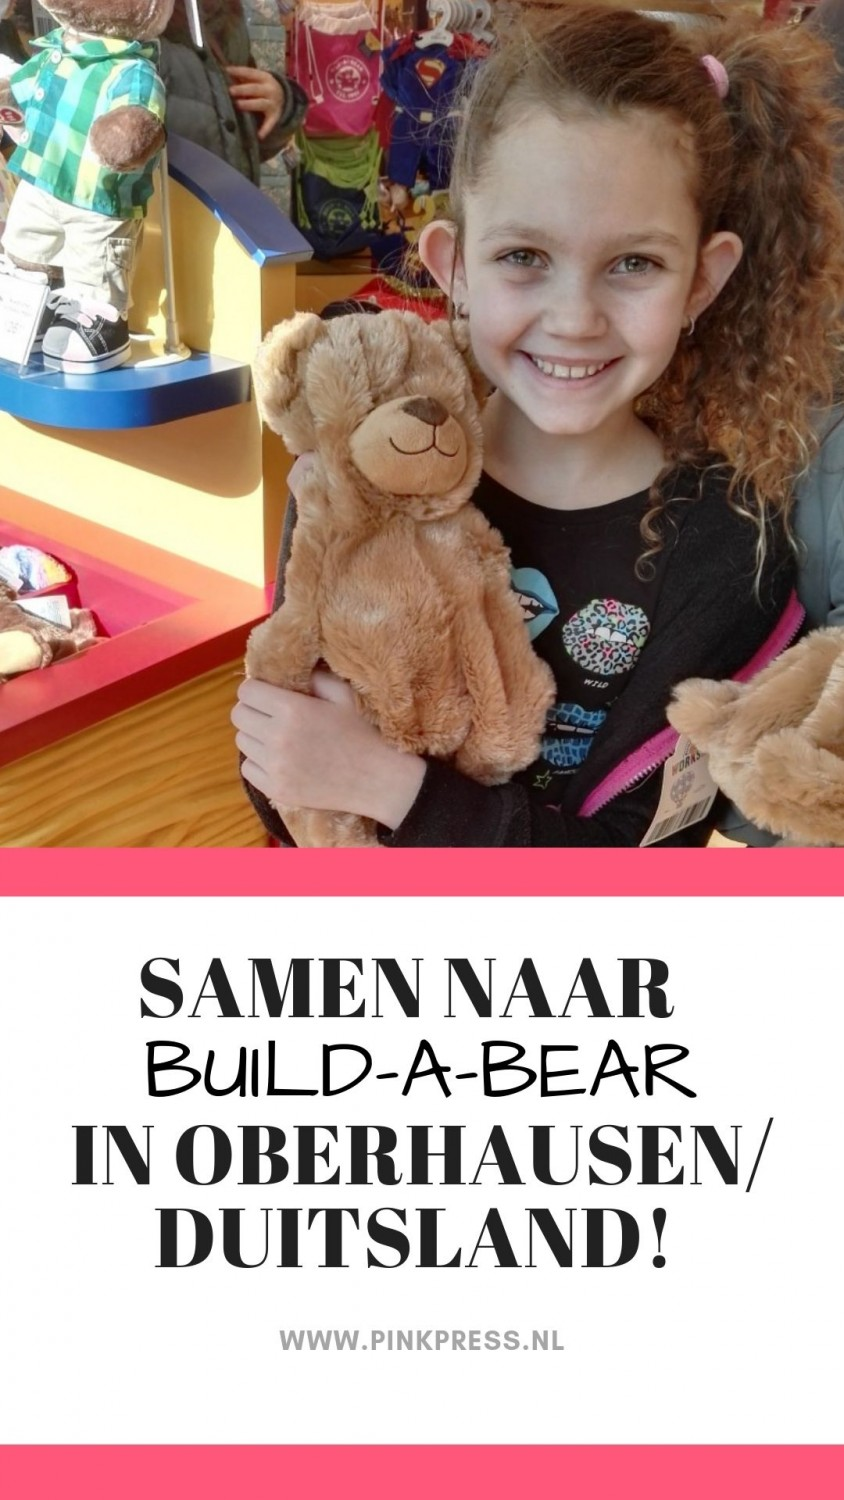 build a bear 1 - Samen naar Build-a-Bear!